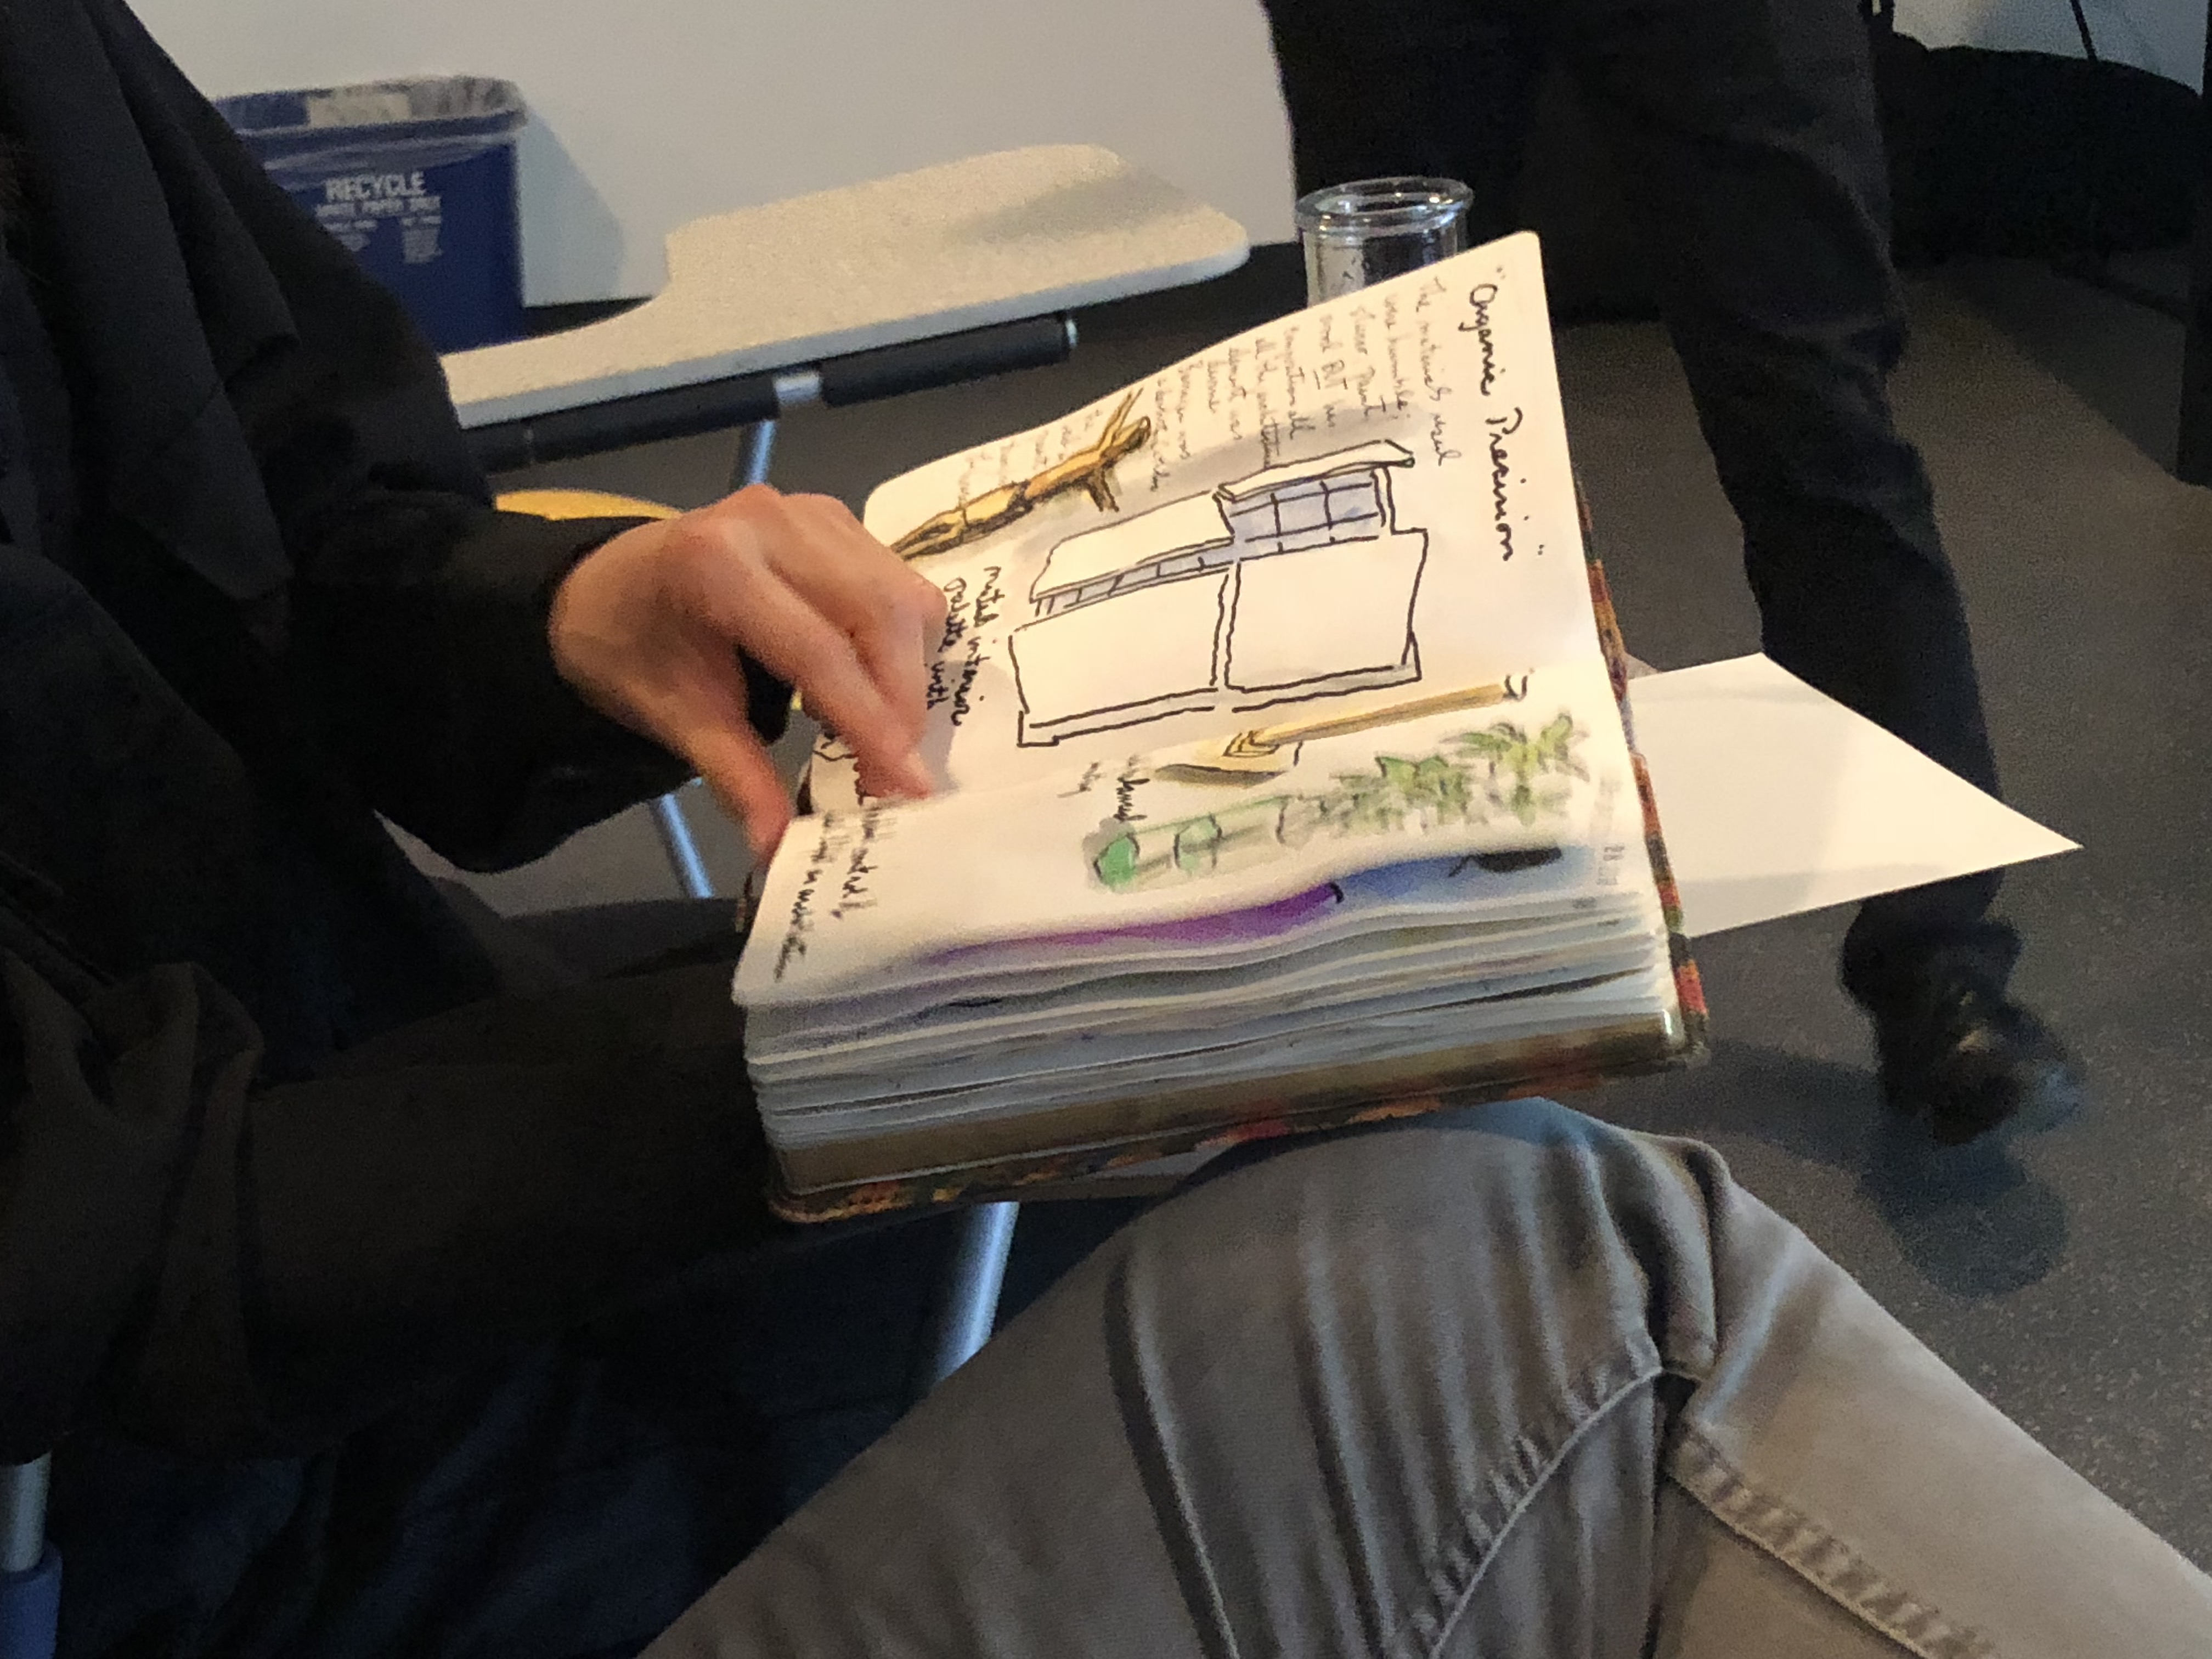 Ken Carbone guest lecture notes, drawings by a student